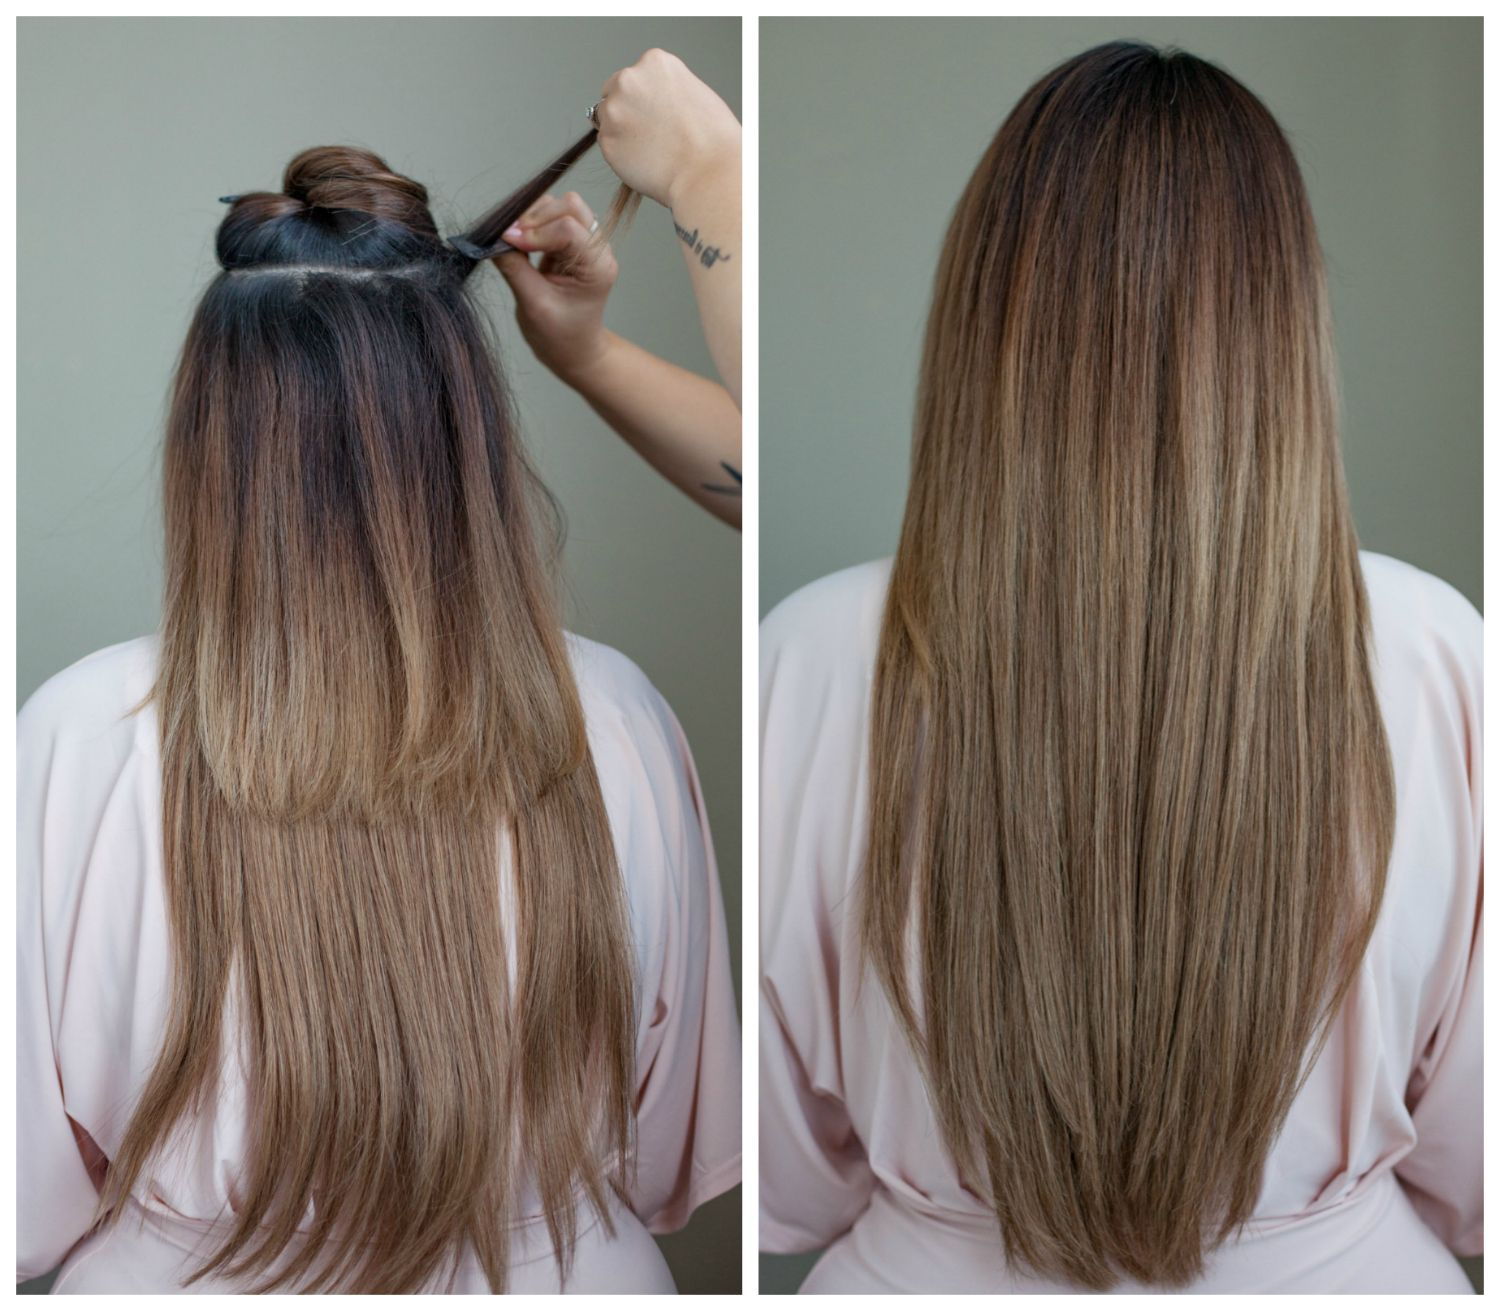 Beauty How To Clip In Extensions Gumboot Glam A Vancouver Based